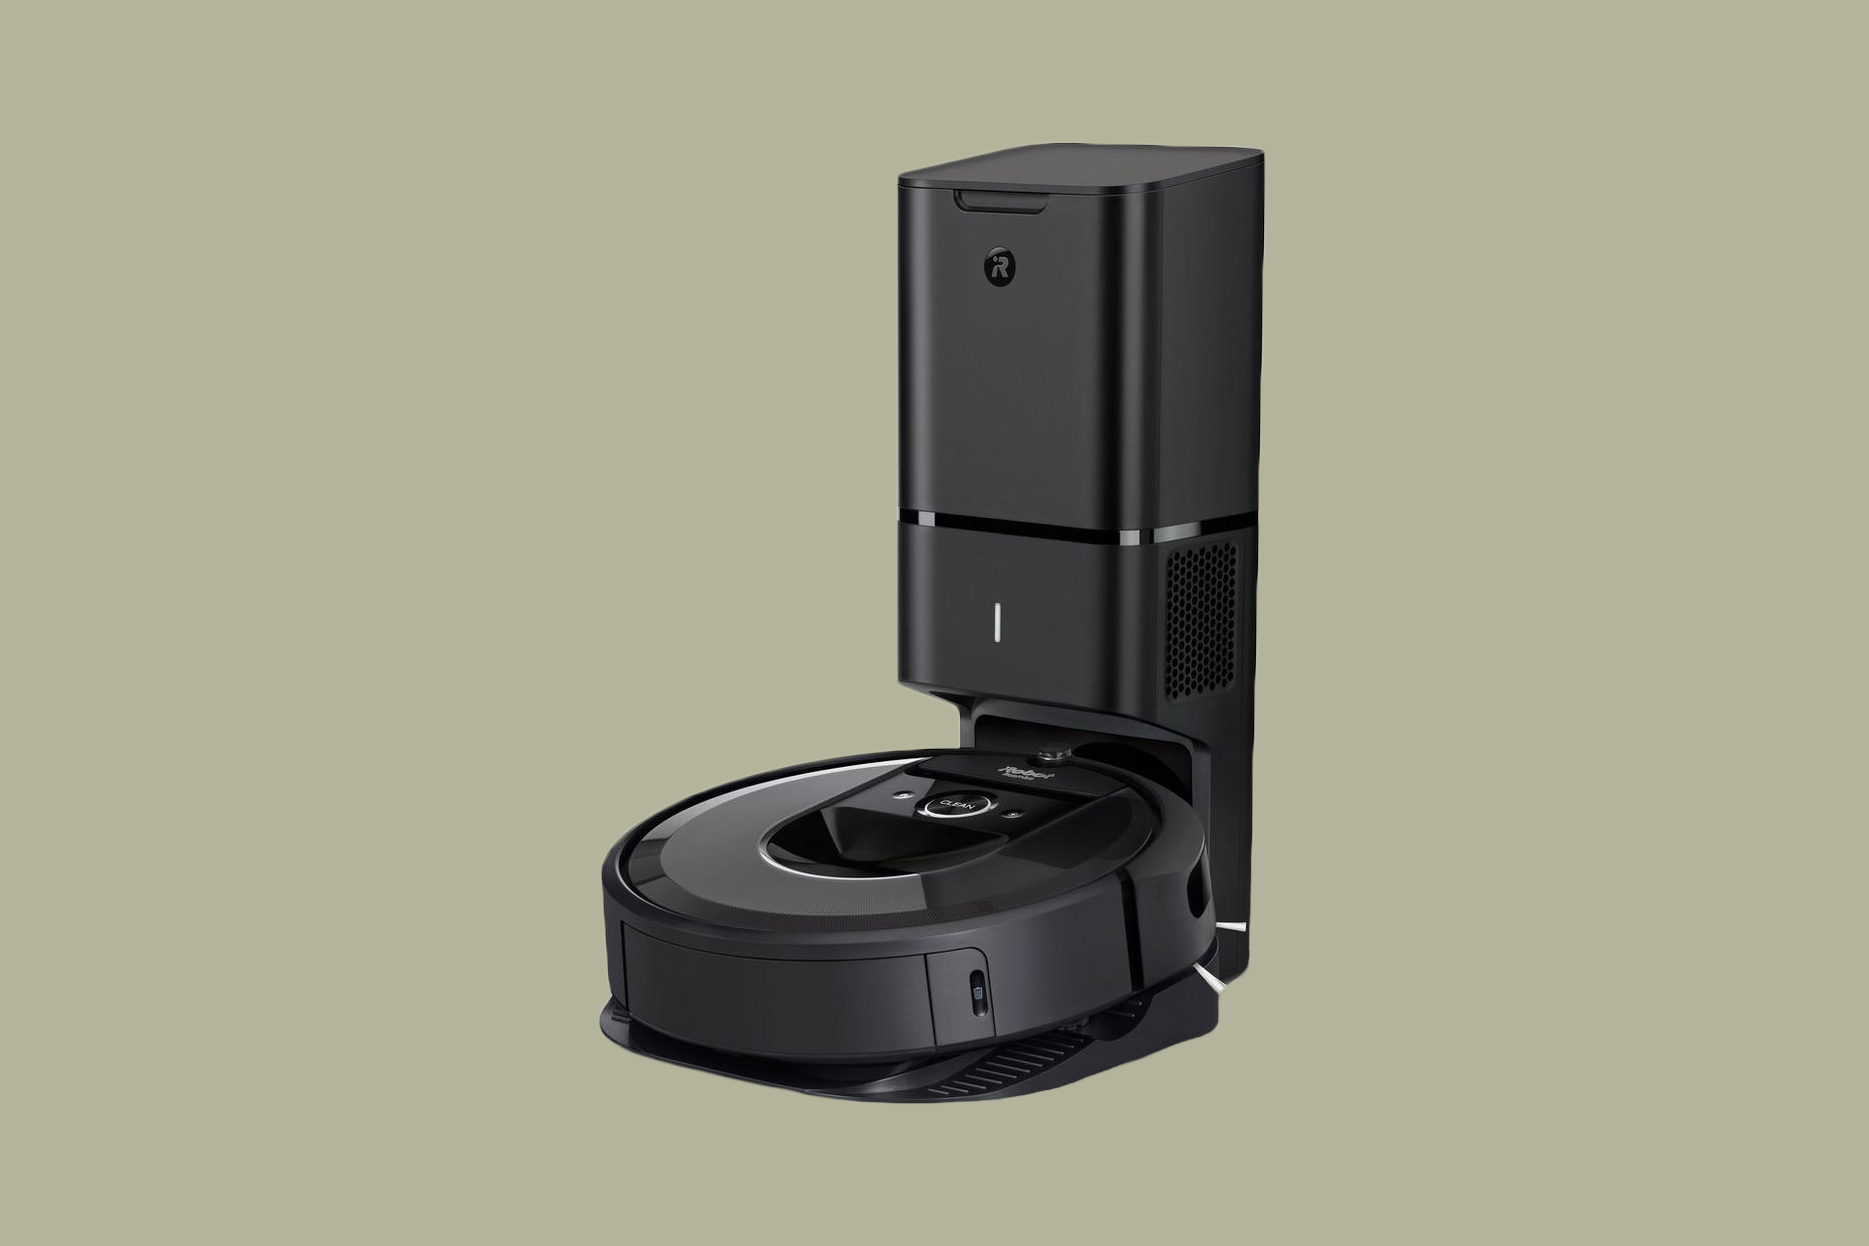 iRobot Roomba i7+ with Clean Base Automatic Dirt Disposal